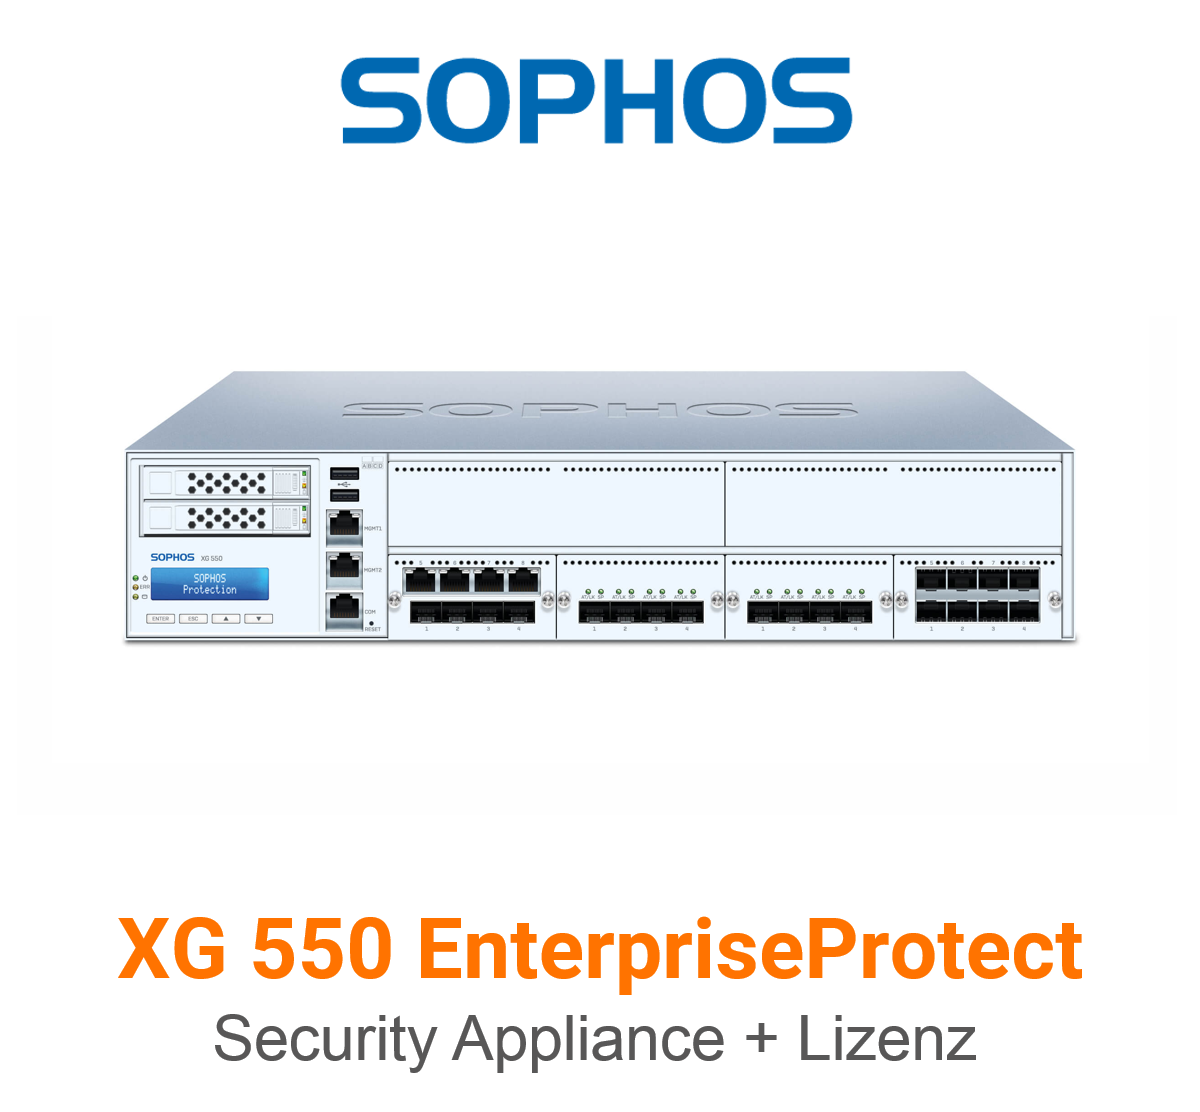 Sophos XG 550 EnterpriseProtect Bundle (Hardware + Lizenz)